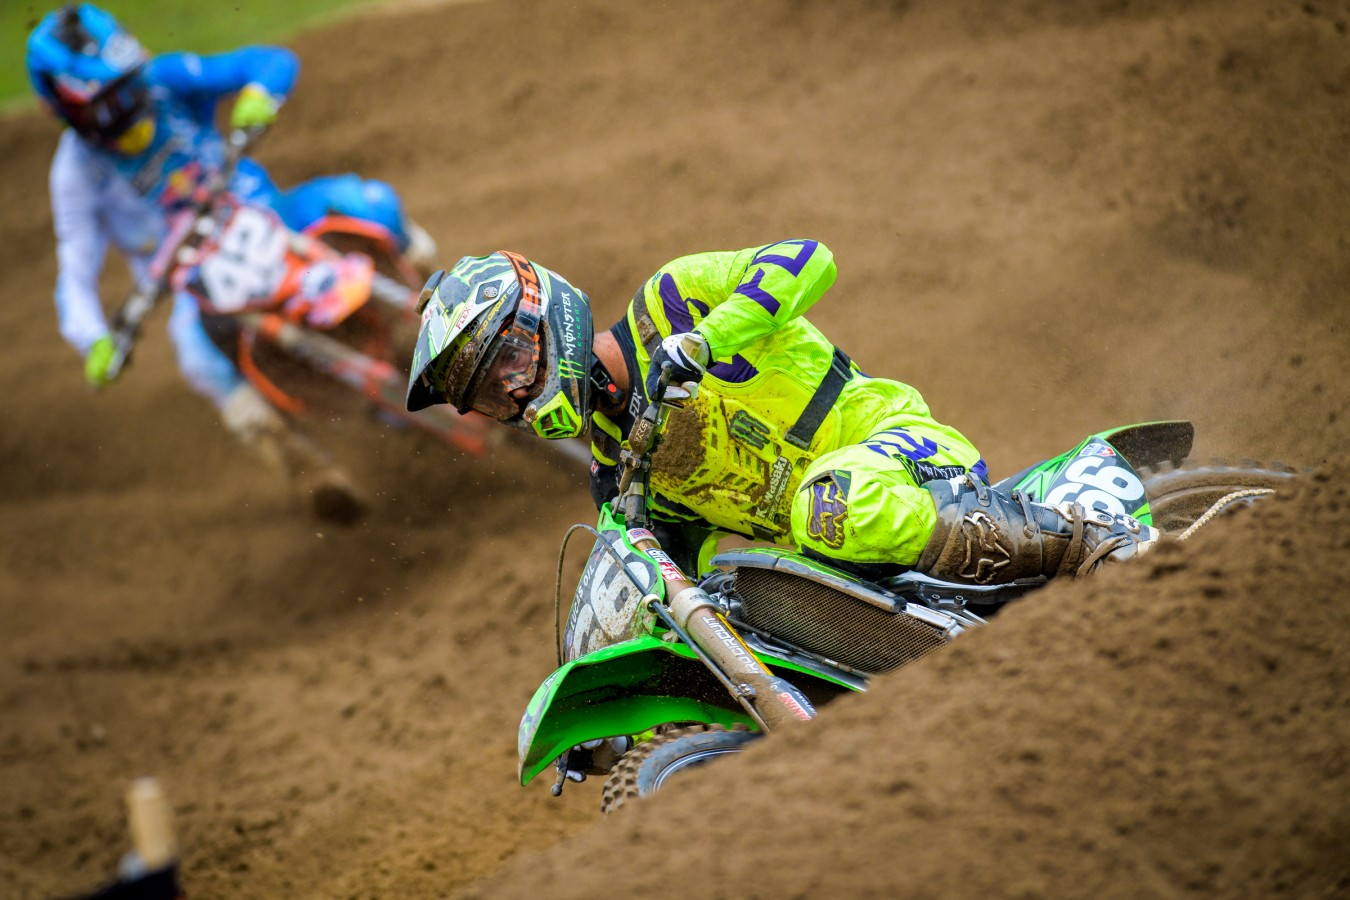 Monster athletes compete in the 2016 MX Nationals season in Southwick, MA